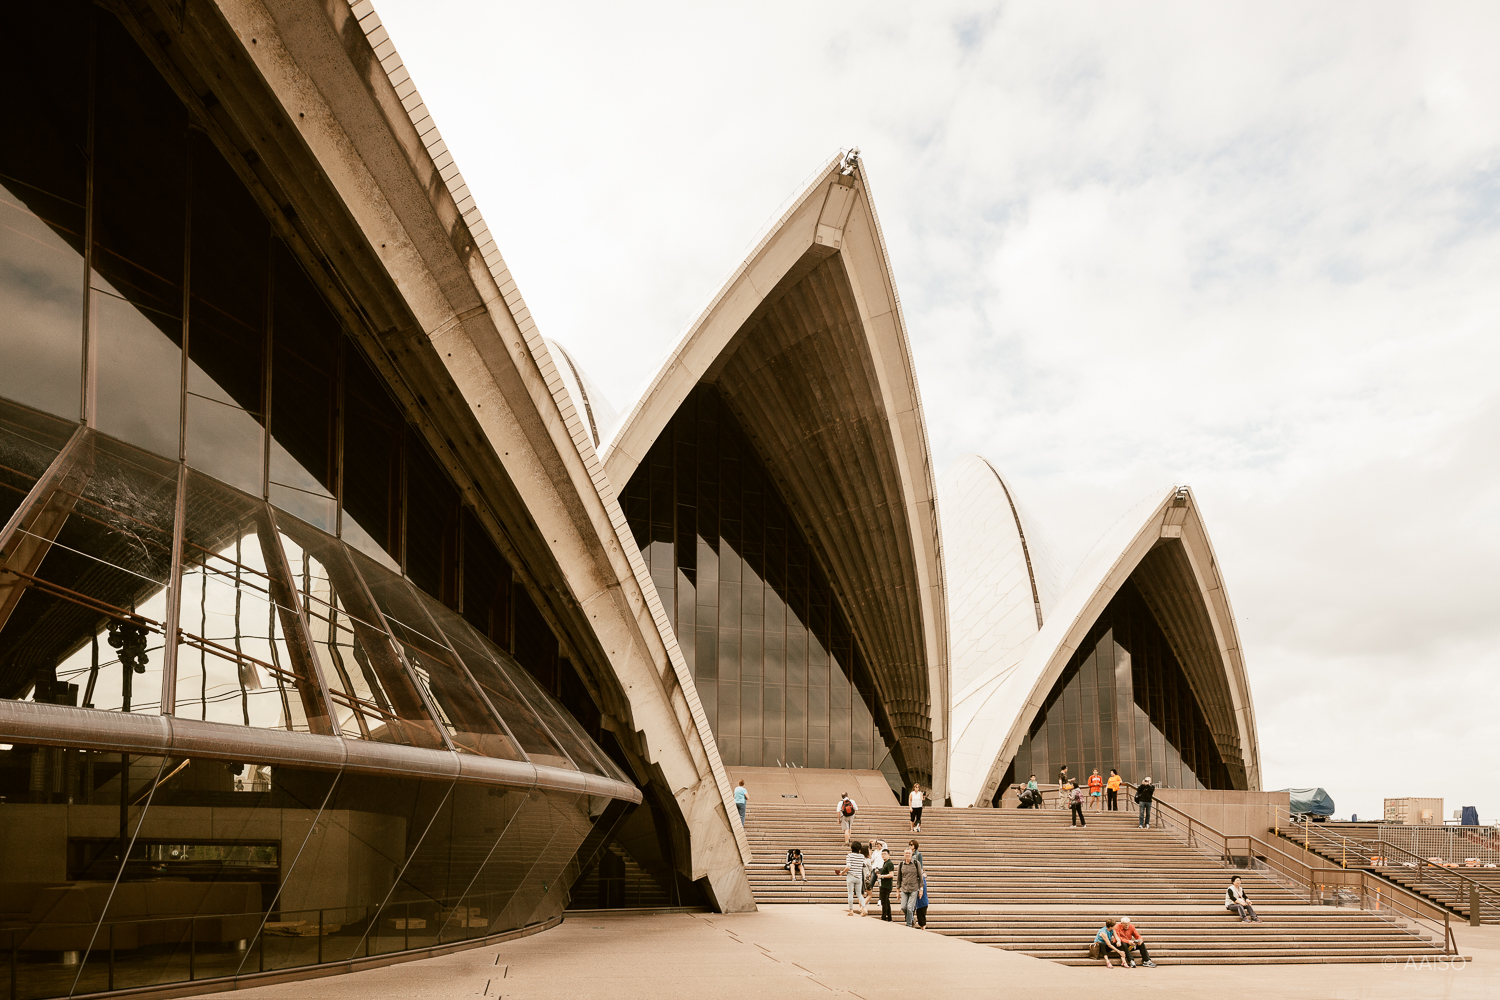 Architect Jørn Utzon's famous Sydney Opera House